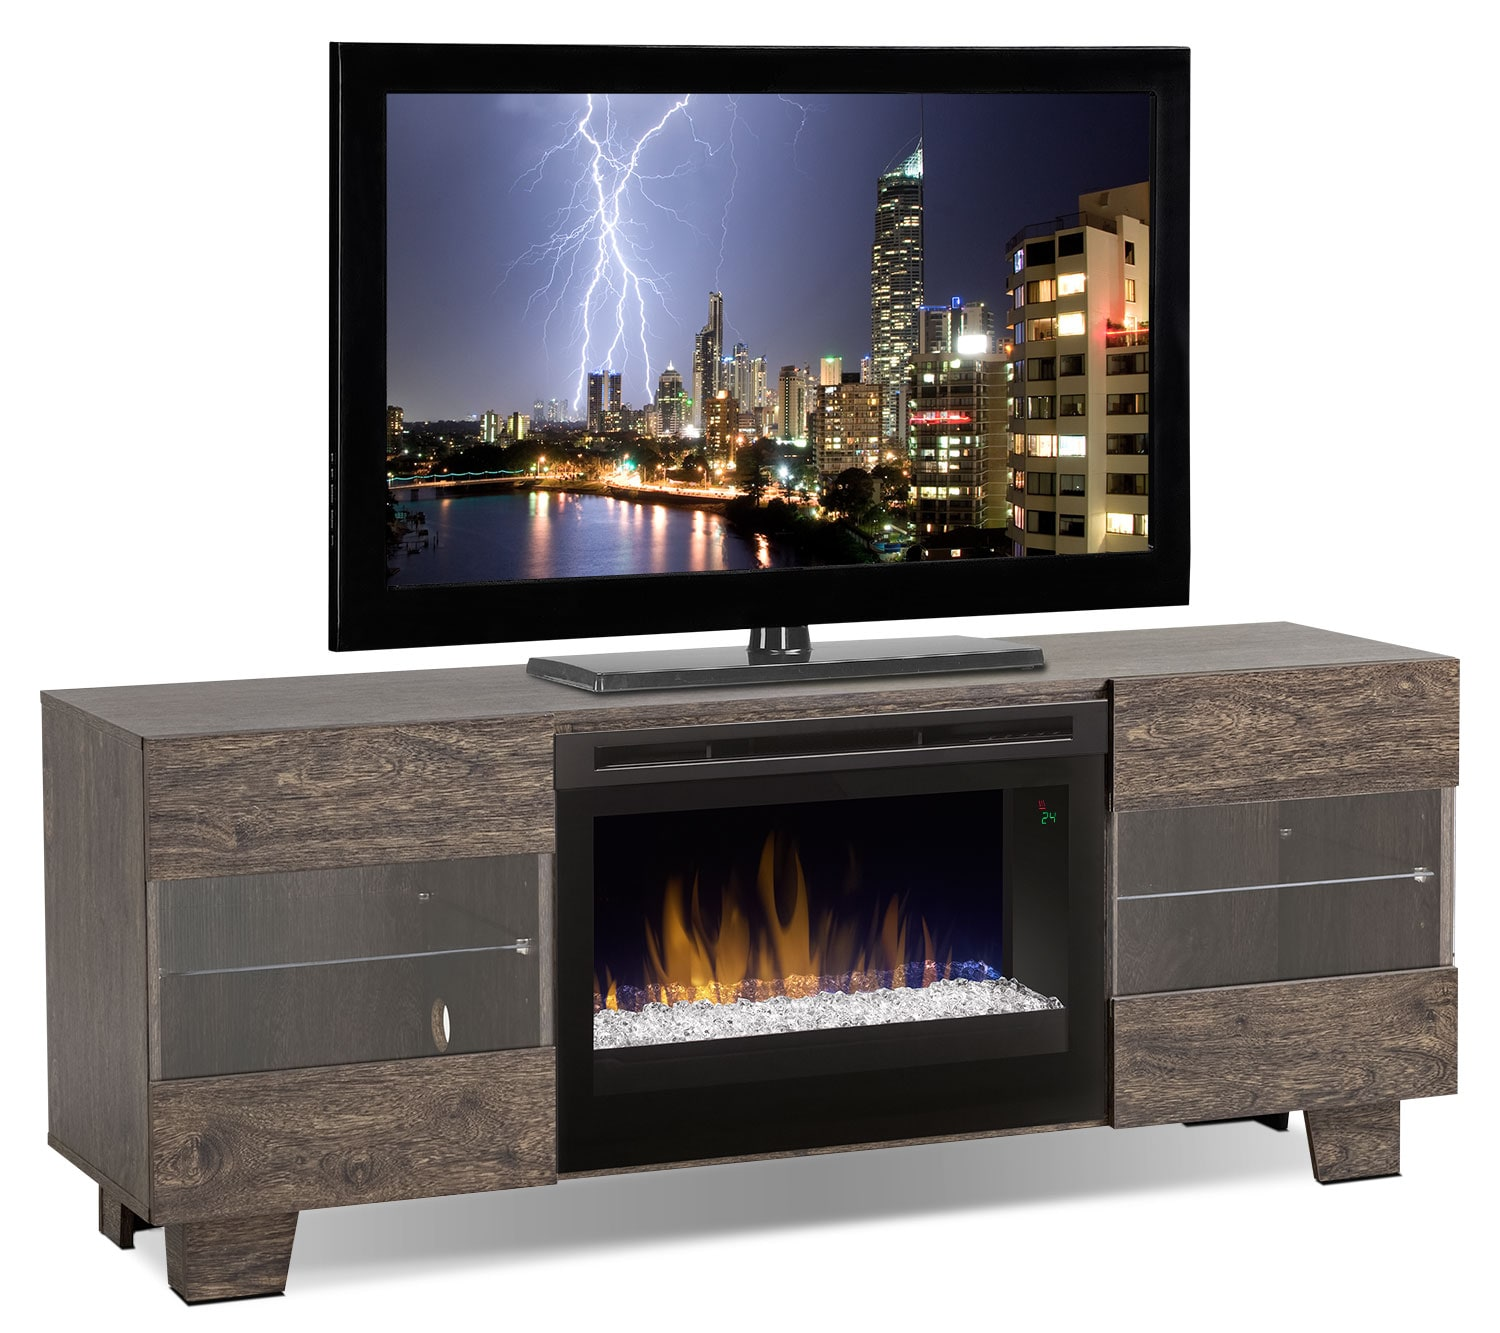 Max 62 Tv Stand With Glass Ember Firebox Elm Brown The Brick